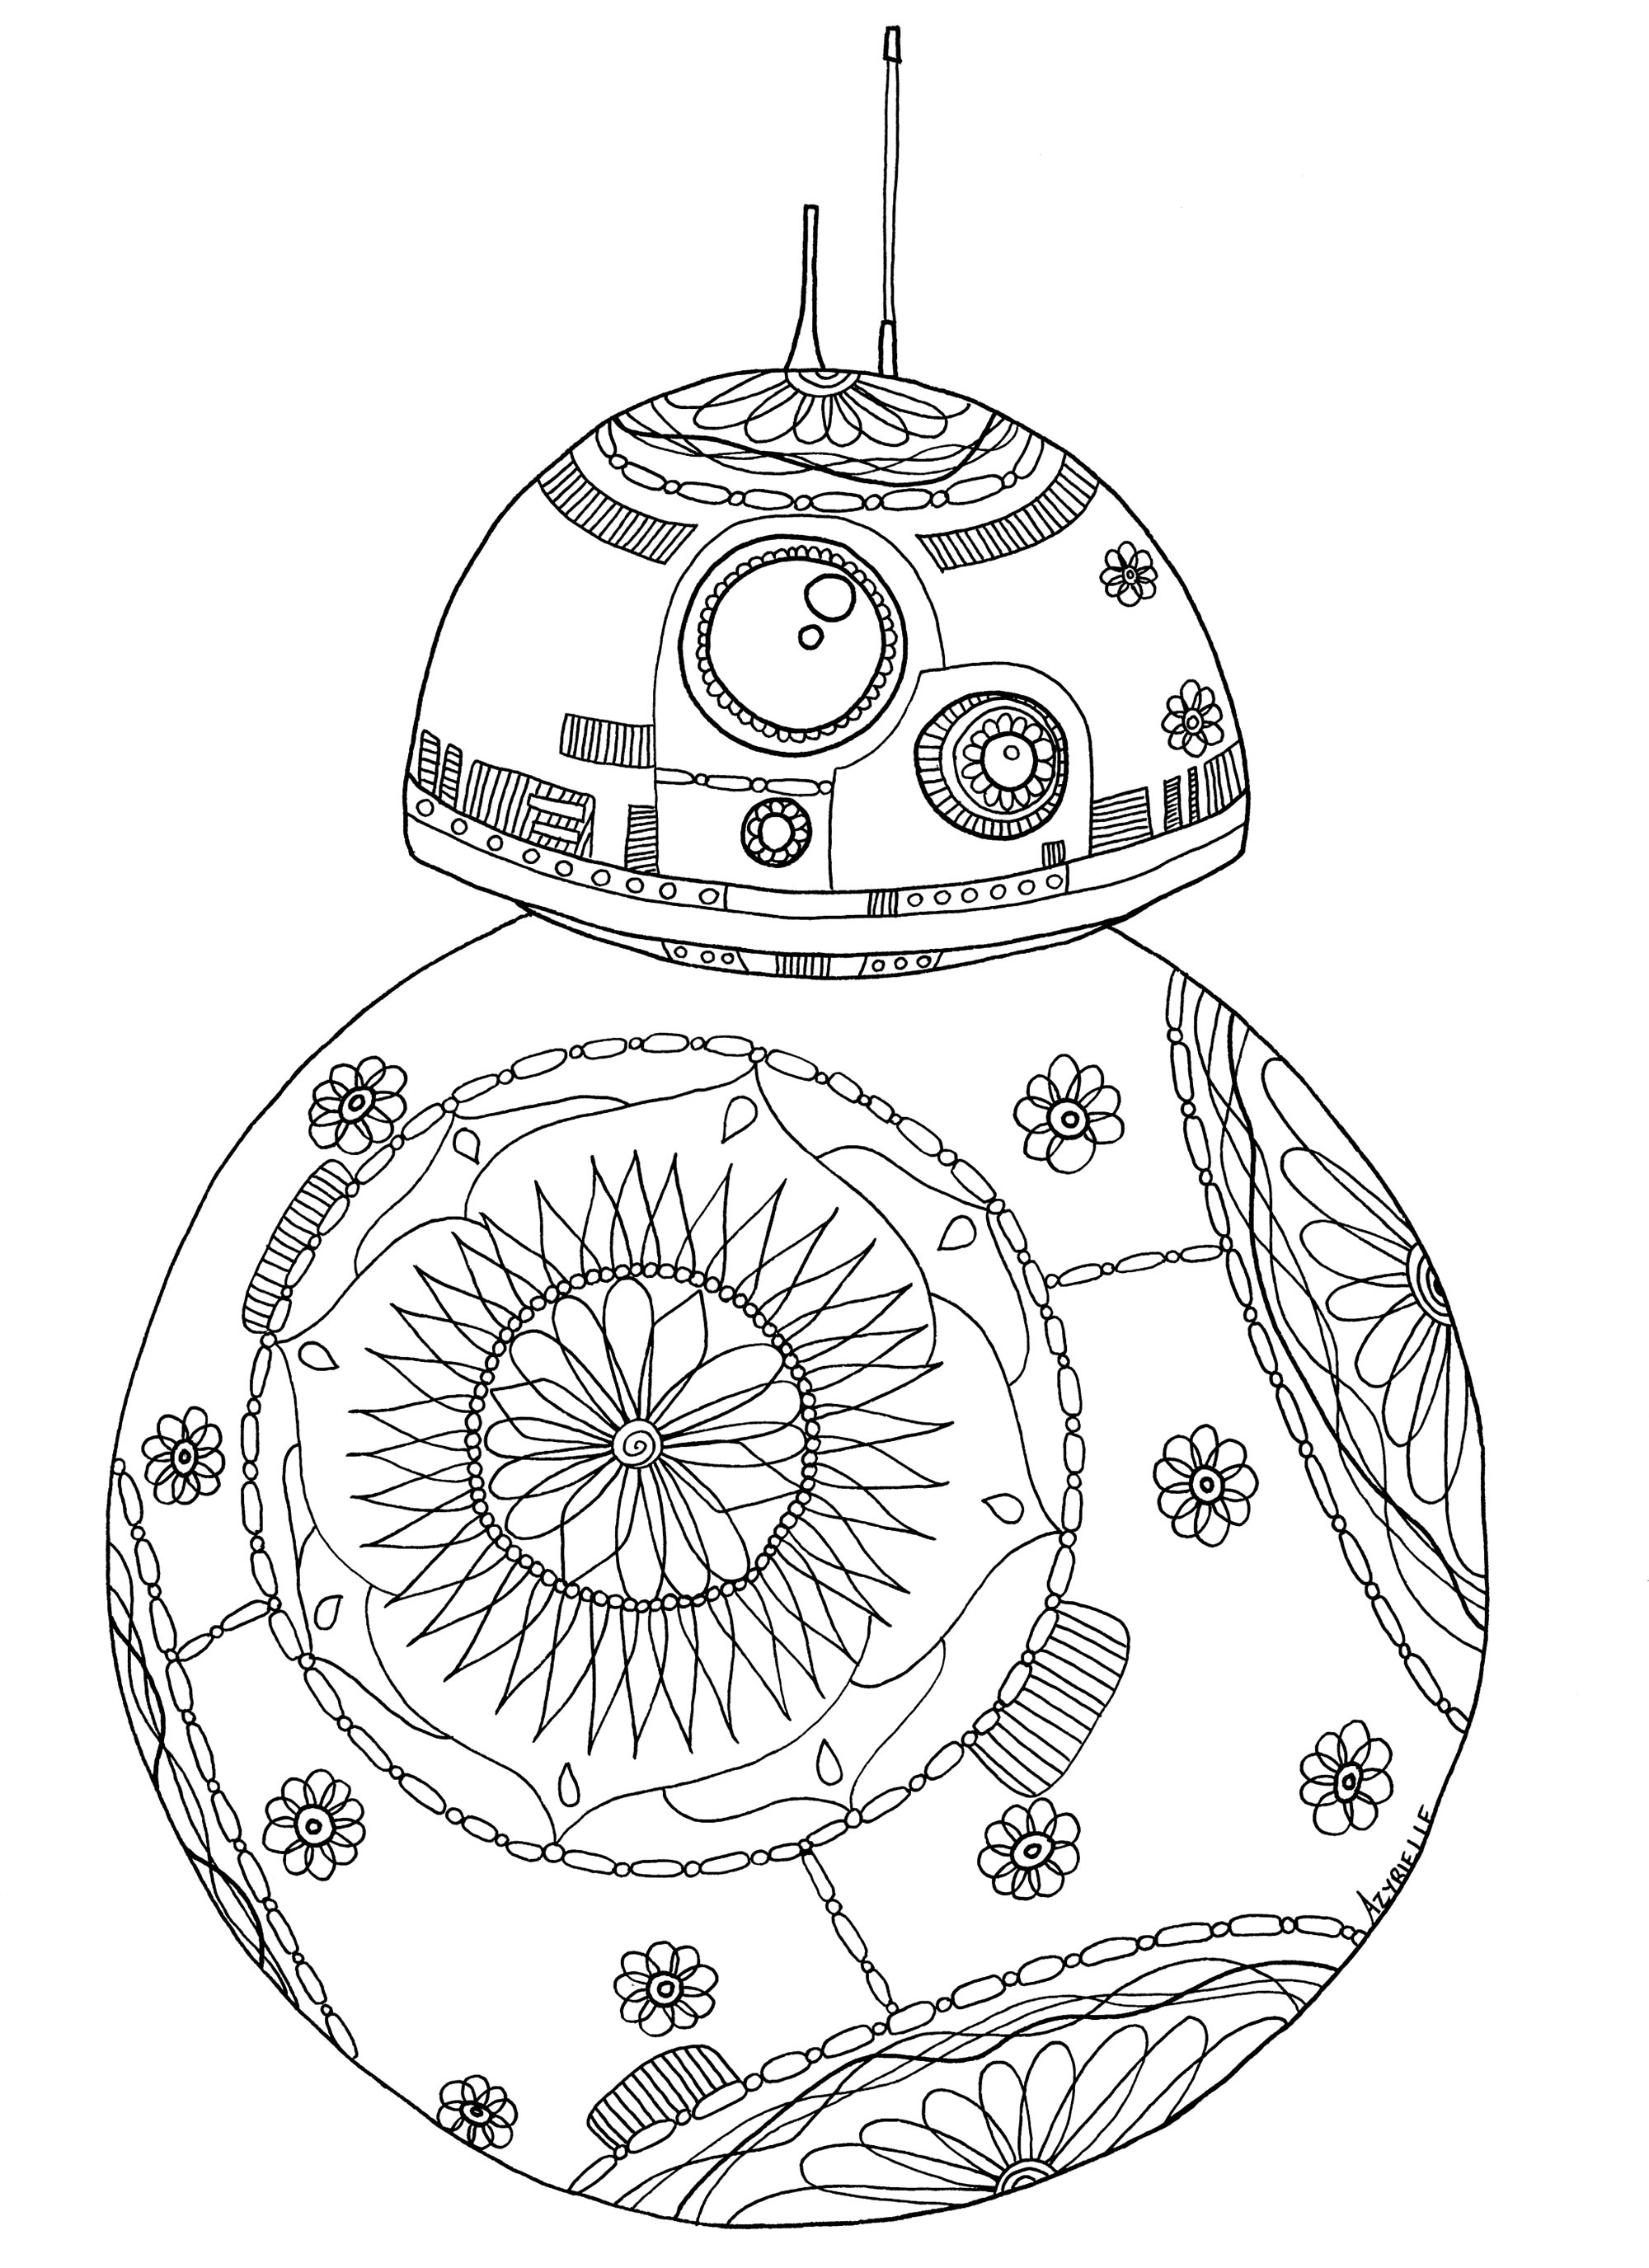 Star wars - Coloring Pages for Adults